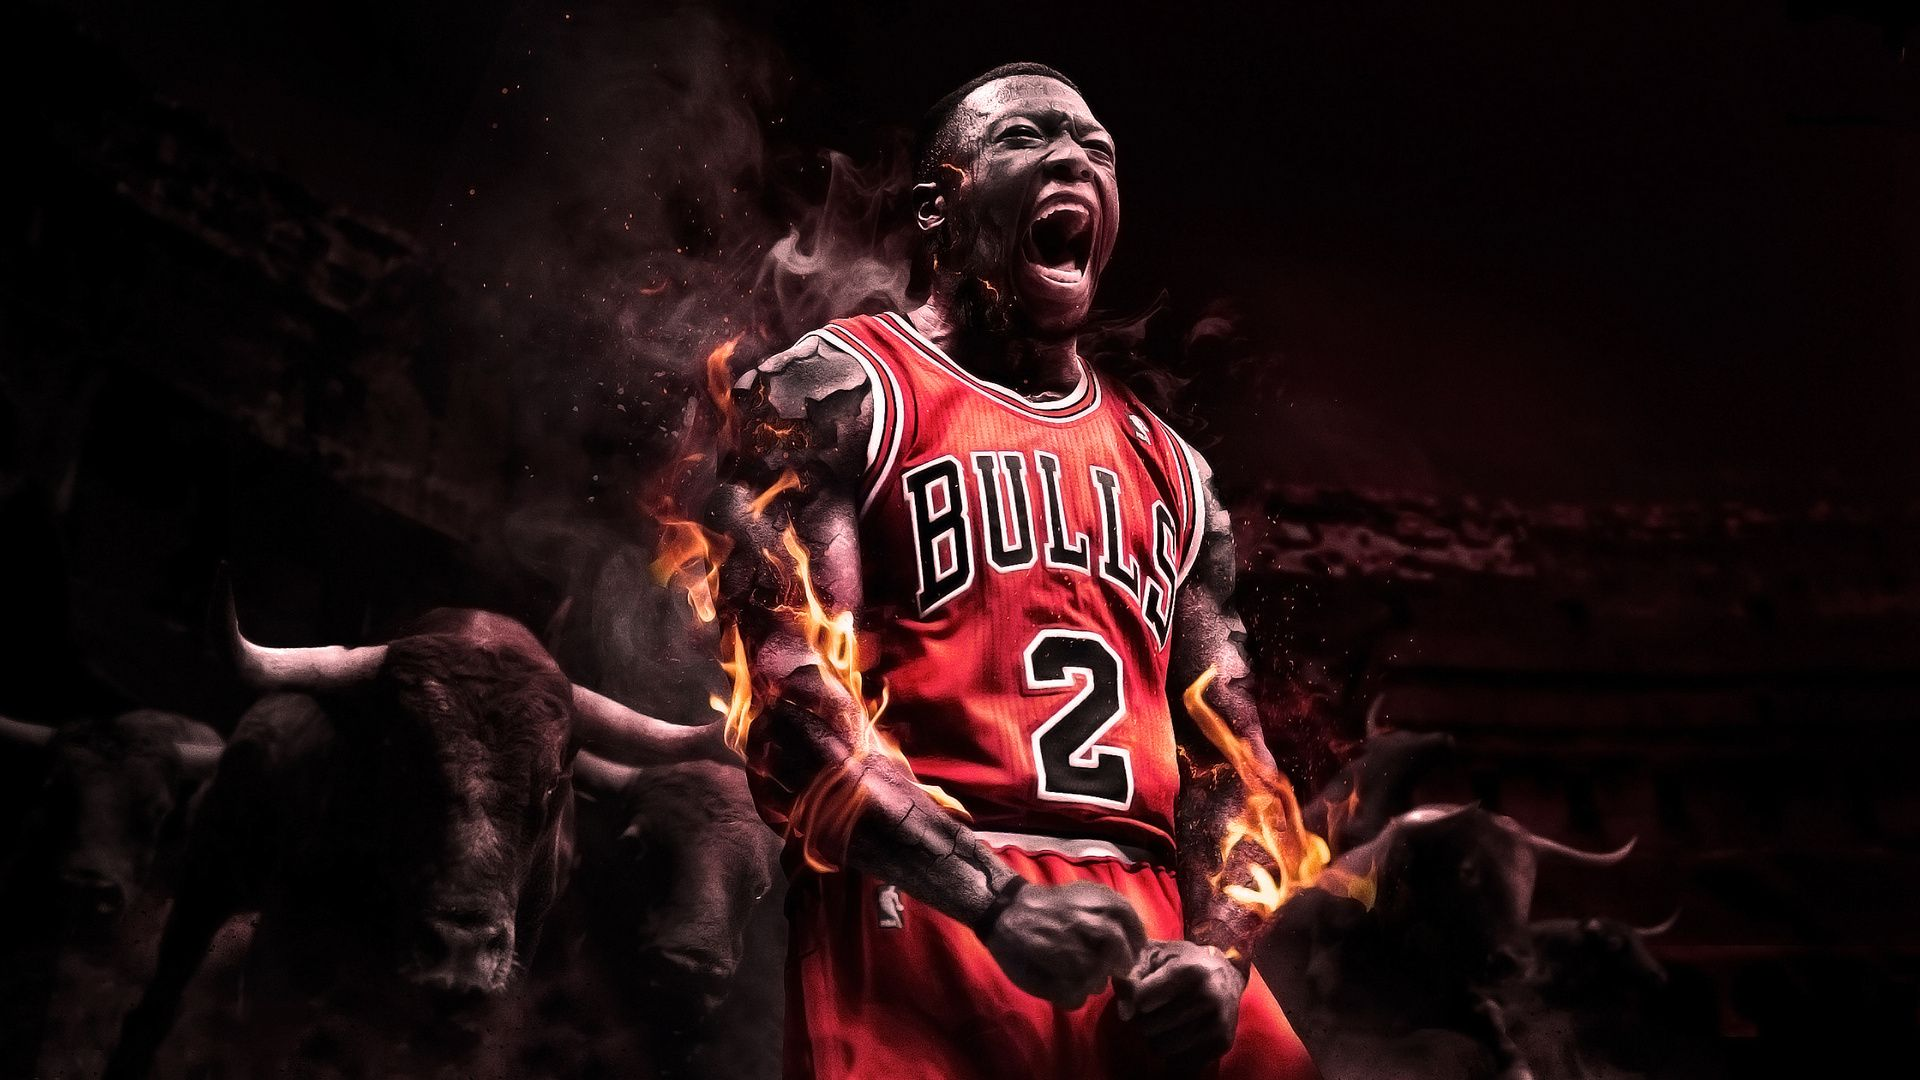 Nba Backgrounds 1 Bull Pictures Chicago Bulls Sports Wallpapers